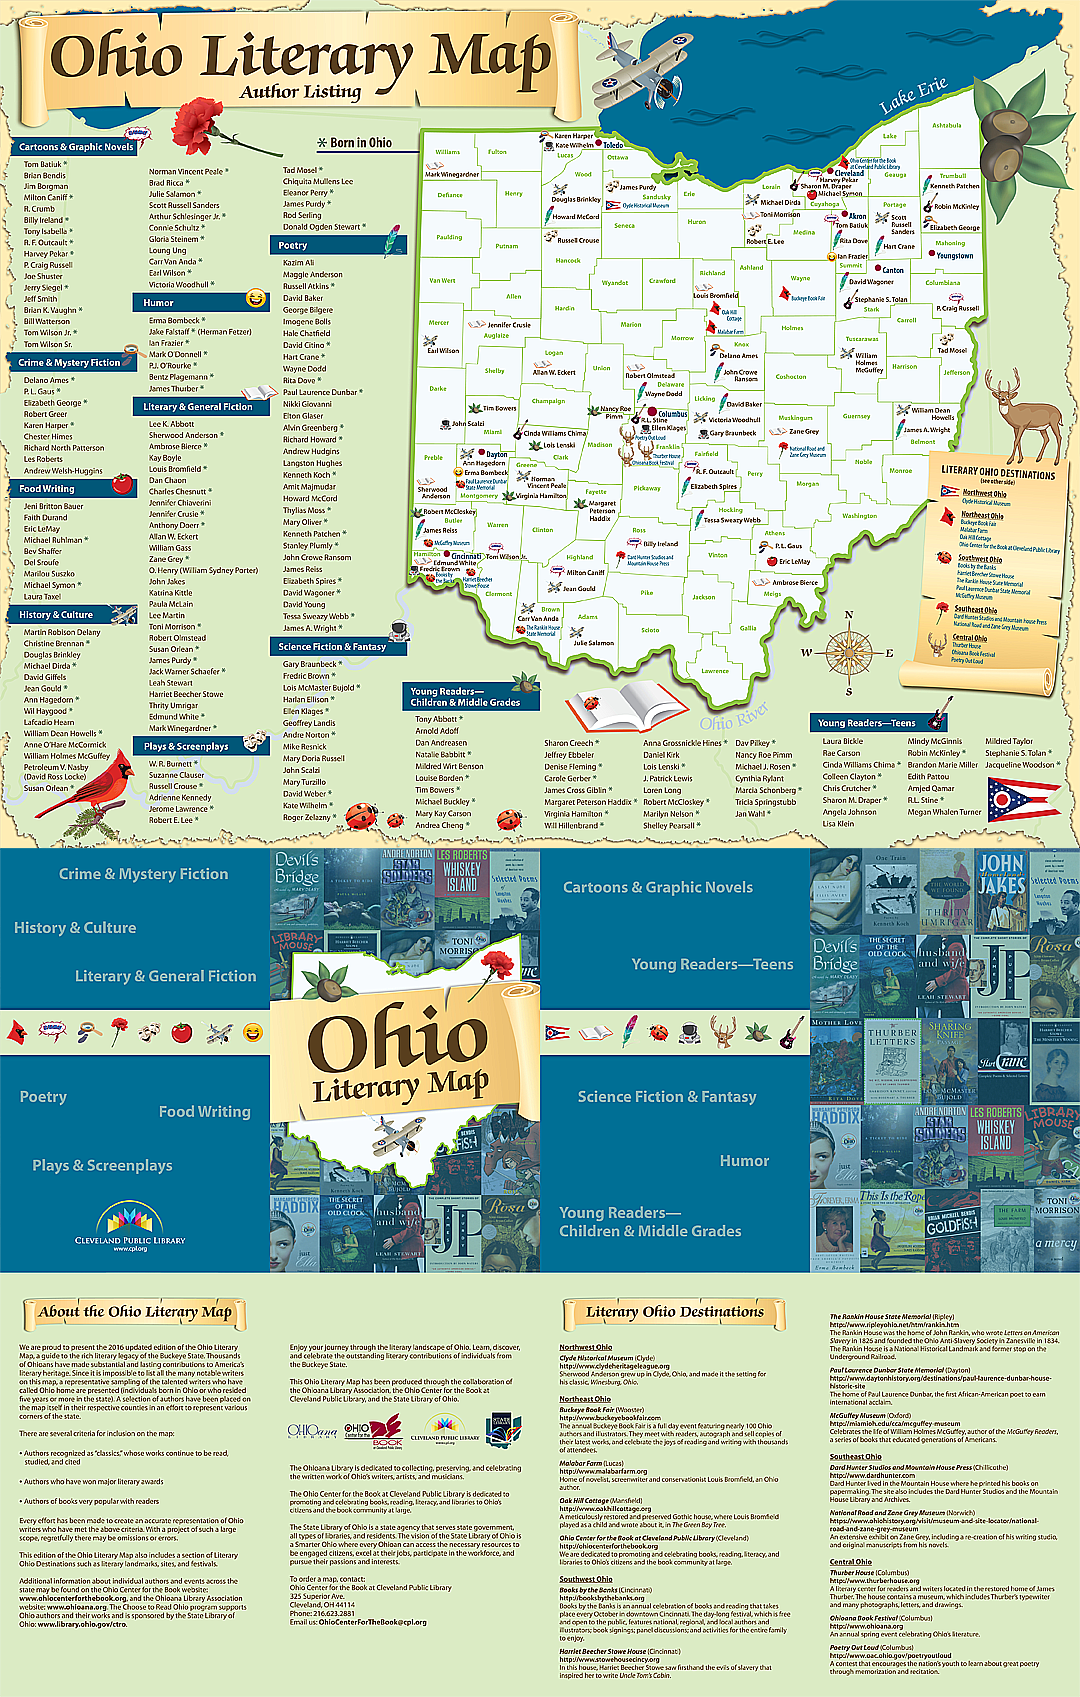 Ohio Literary Map (small image)